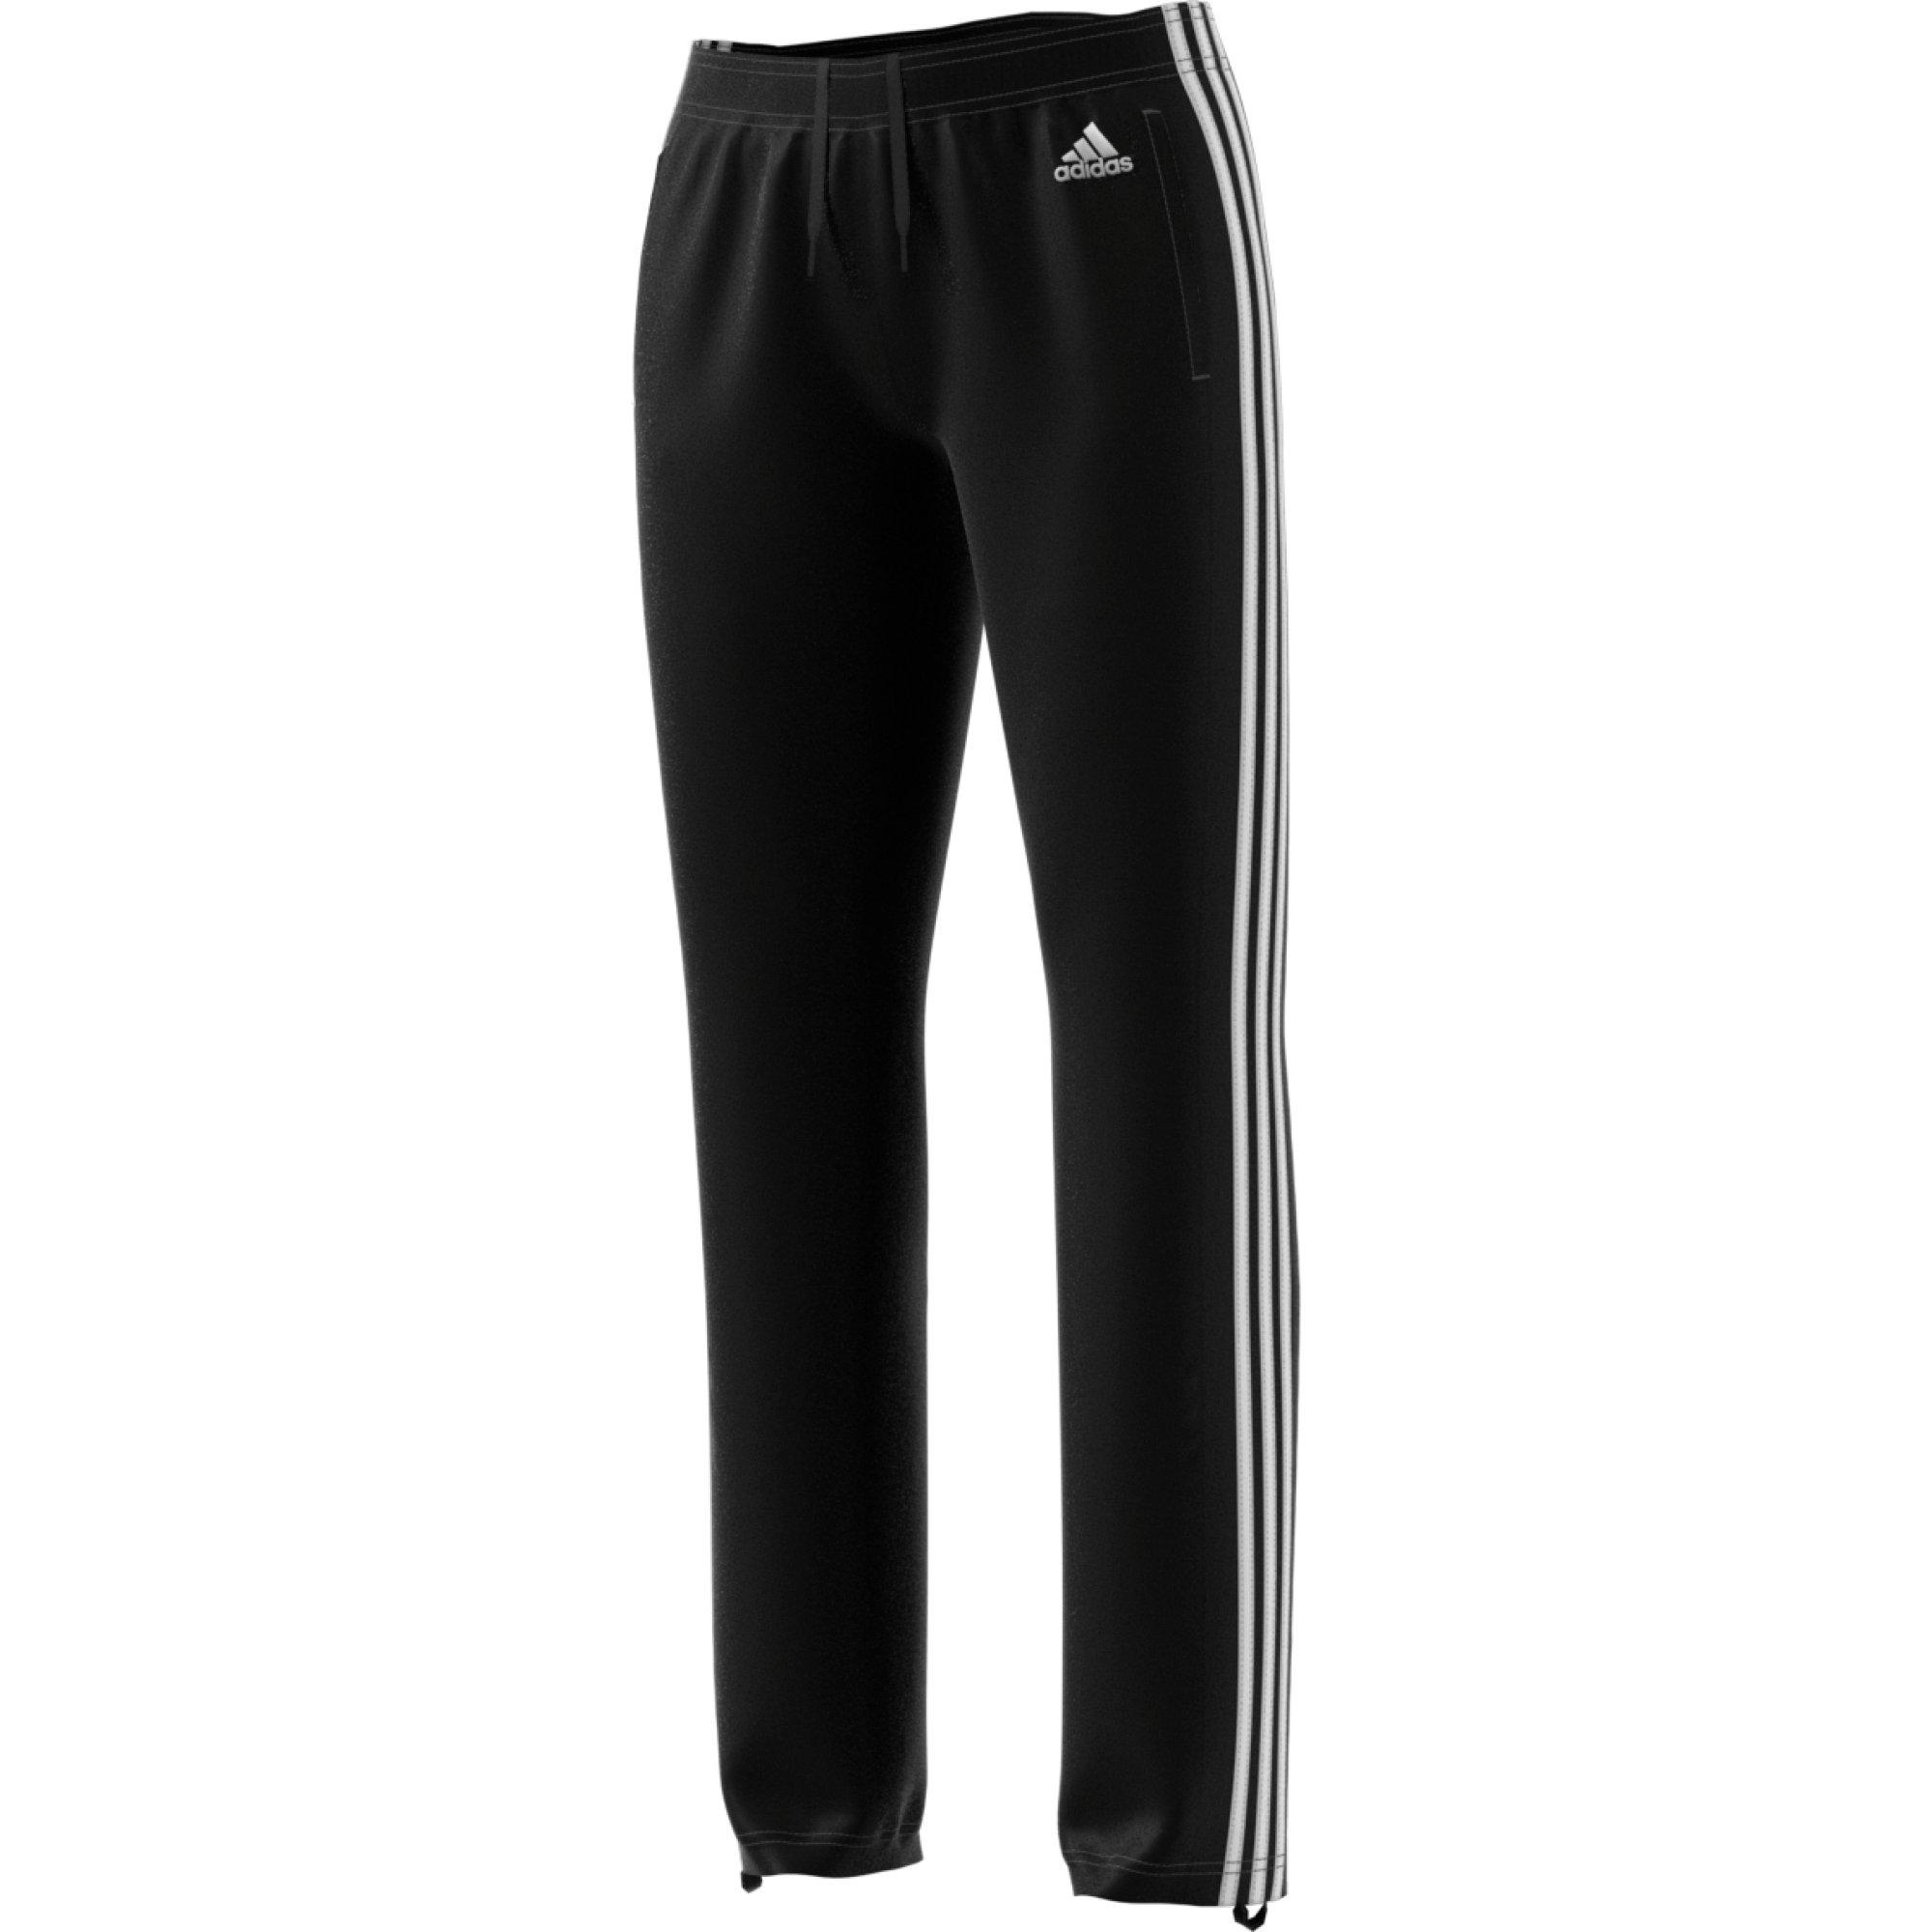 Select Styles.: (0). adidas Women\u0027s Designed 2 Move Straight Pant